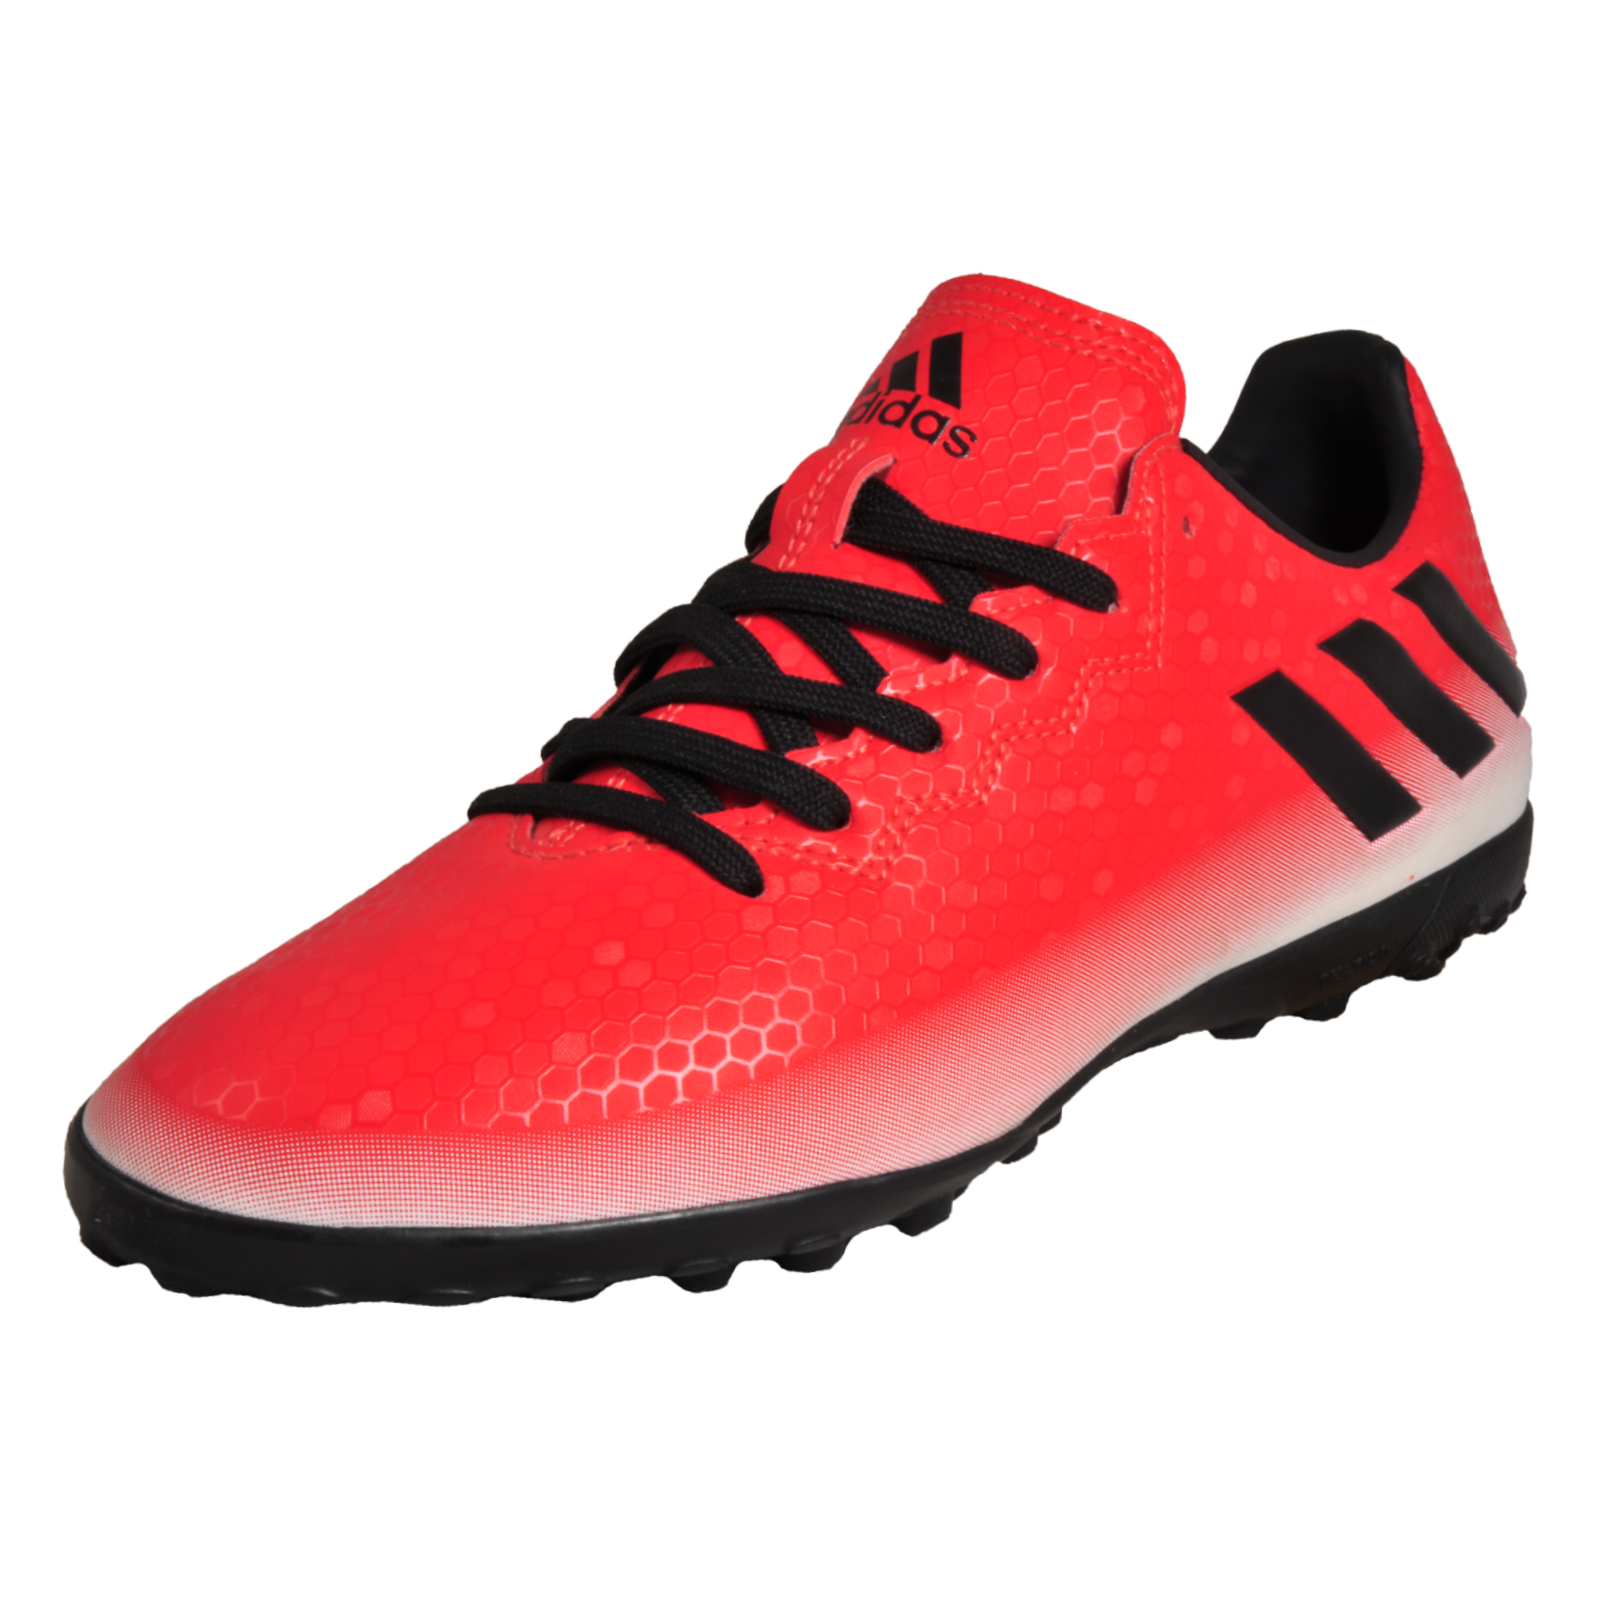 b018eae71 Details about Adidas Messi 16.4 TF Mens Football Astro Turf Indoor Trainers  Red